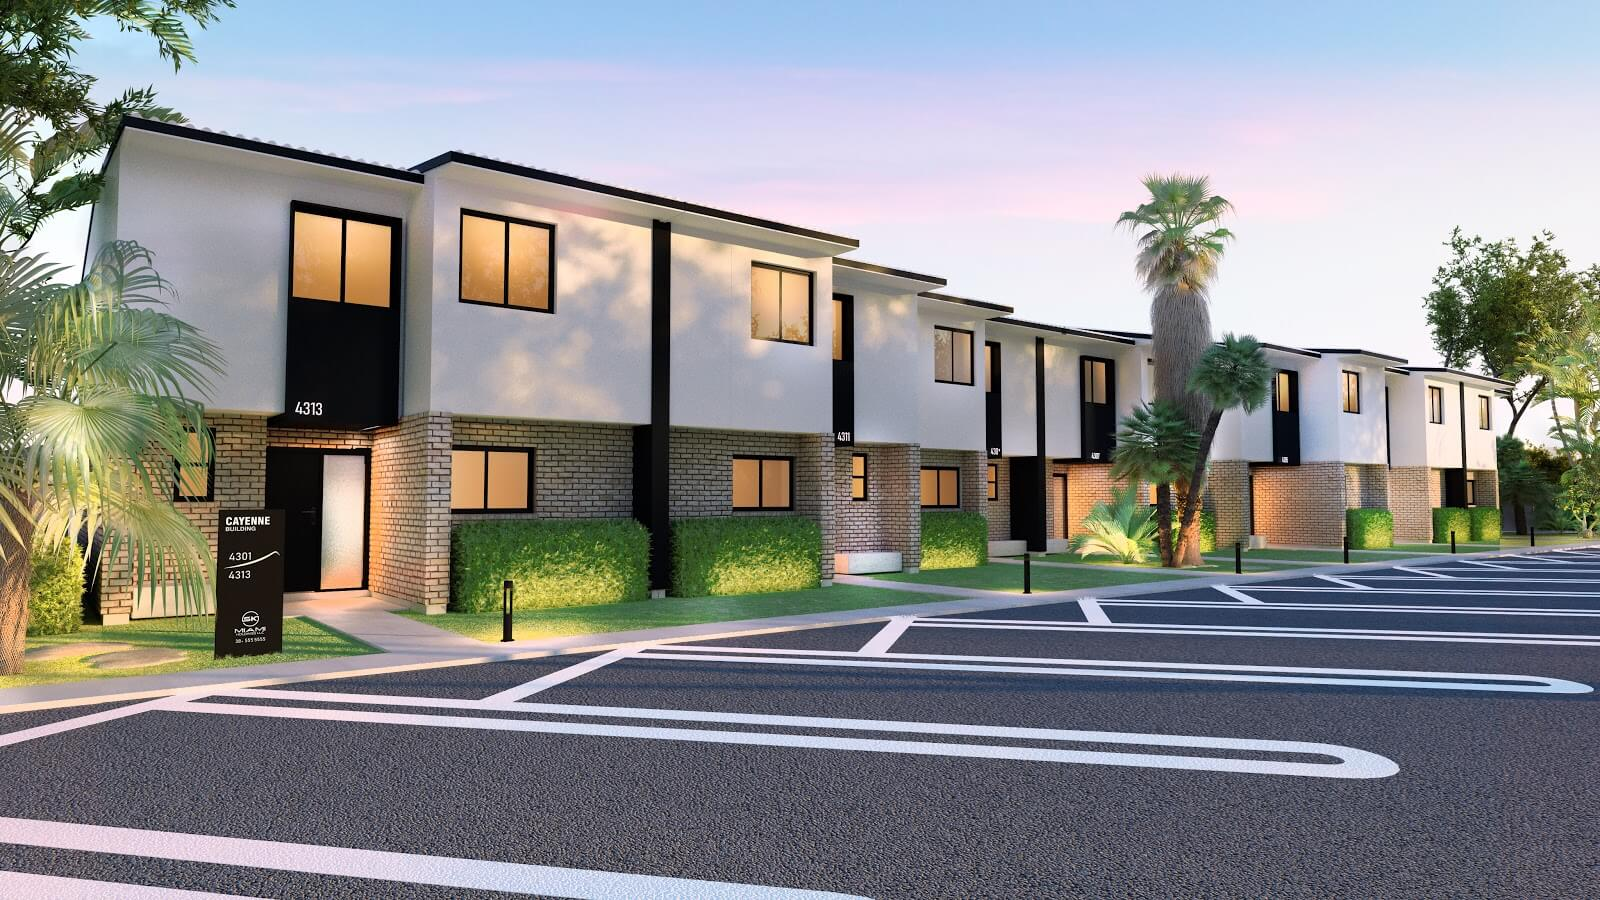 Townhouses (13)